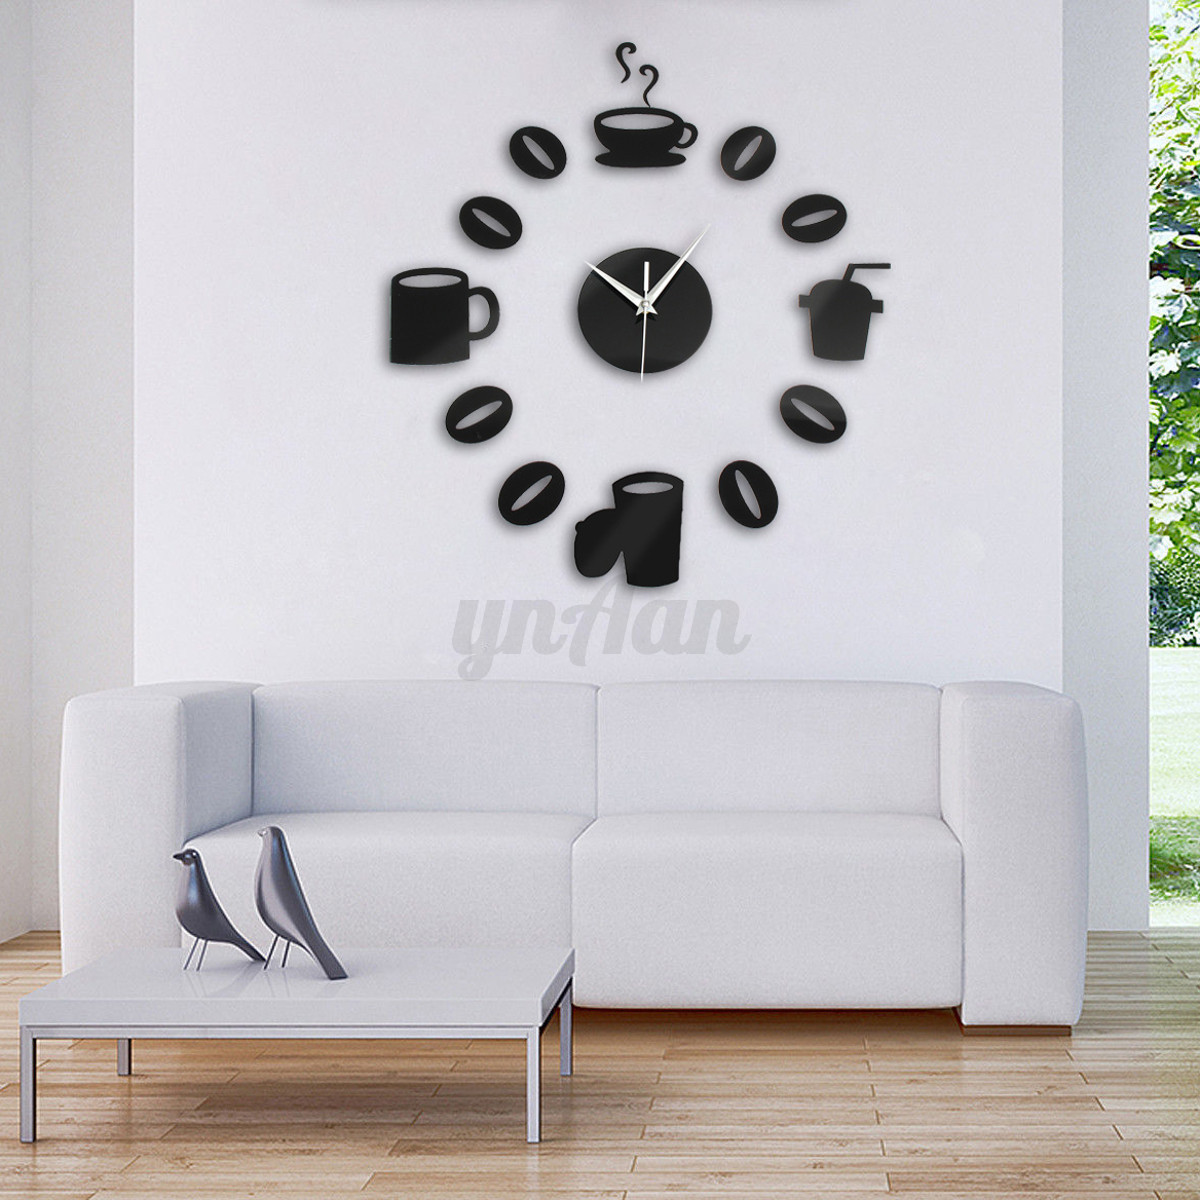 Modern Art Decor Wall Clock Sticker : Diy modern coffee time wall clock d mirror sticker home